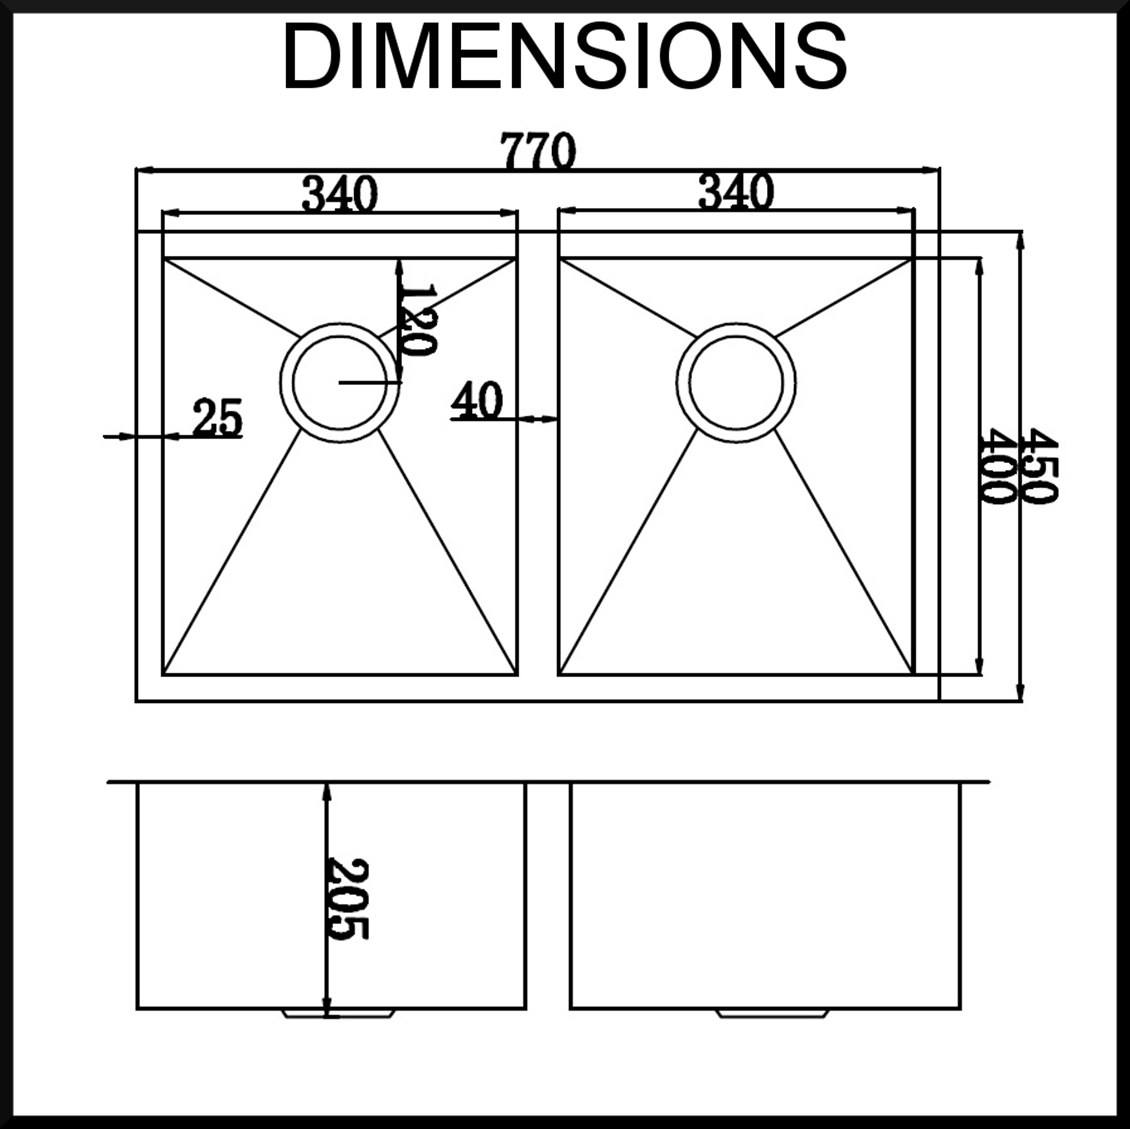 stainless steel kitchen sink dimensions